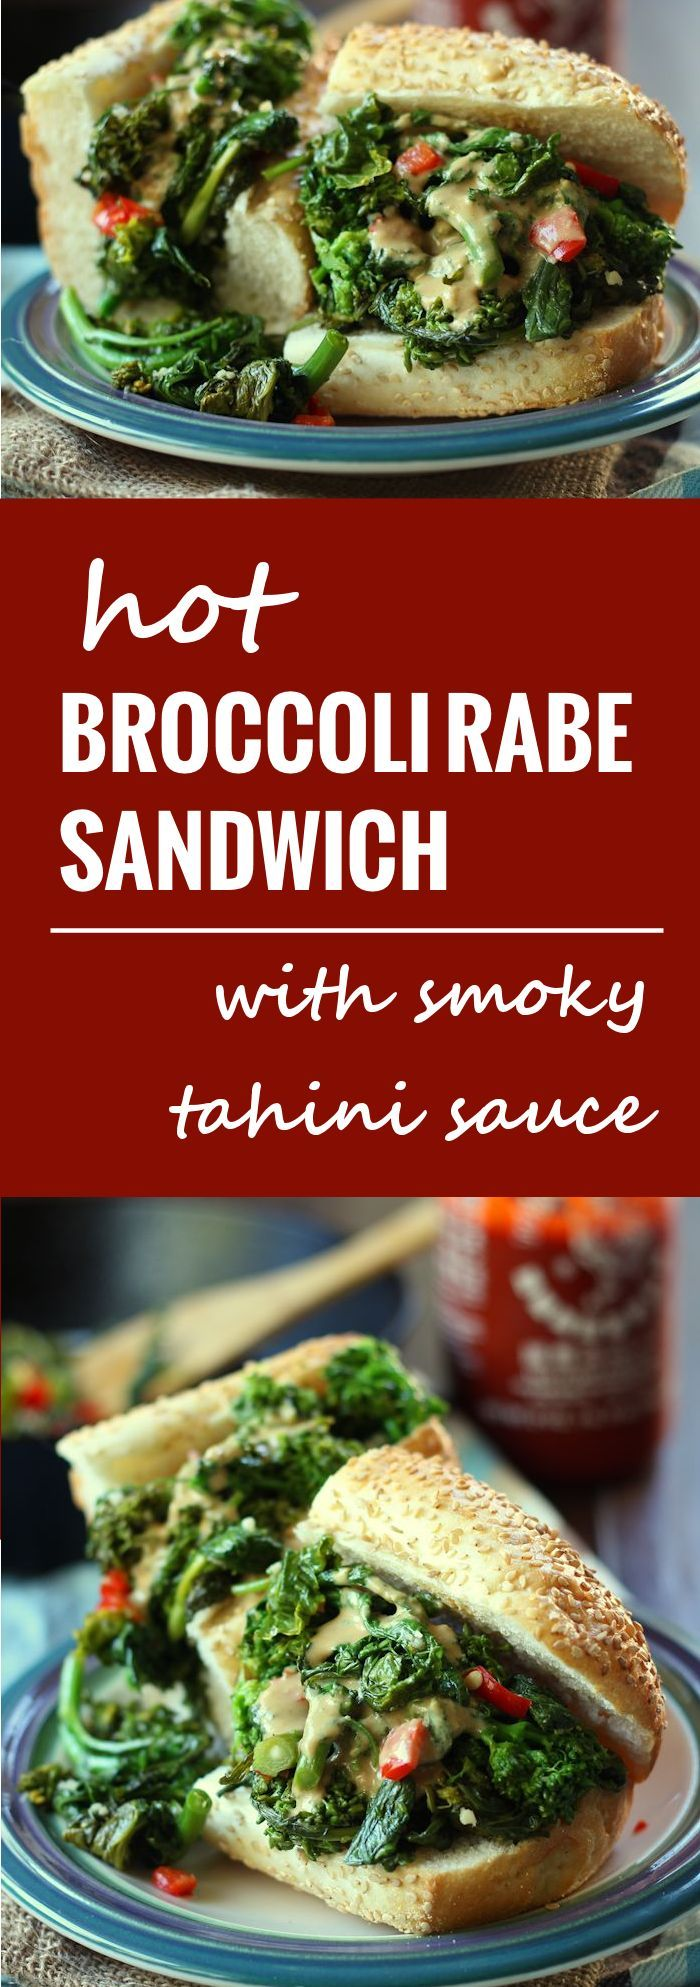 This toasty broccoli rabe sandwich is stuffed with spicy, garlicky ...